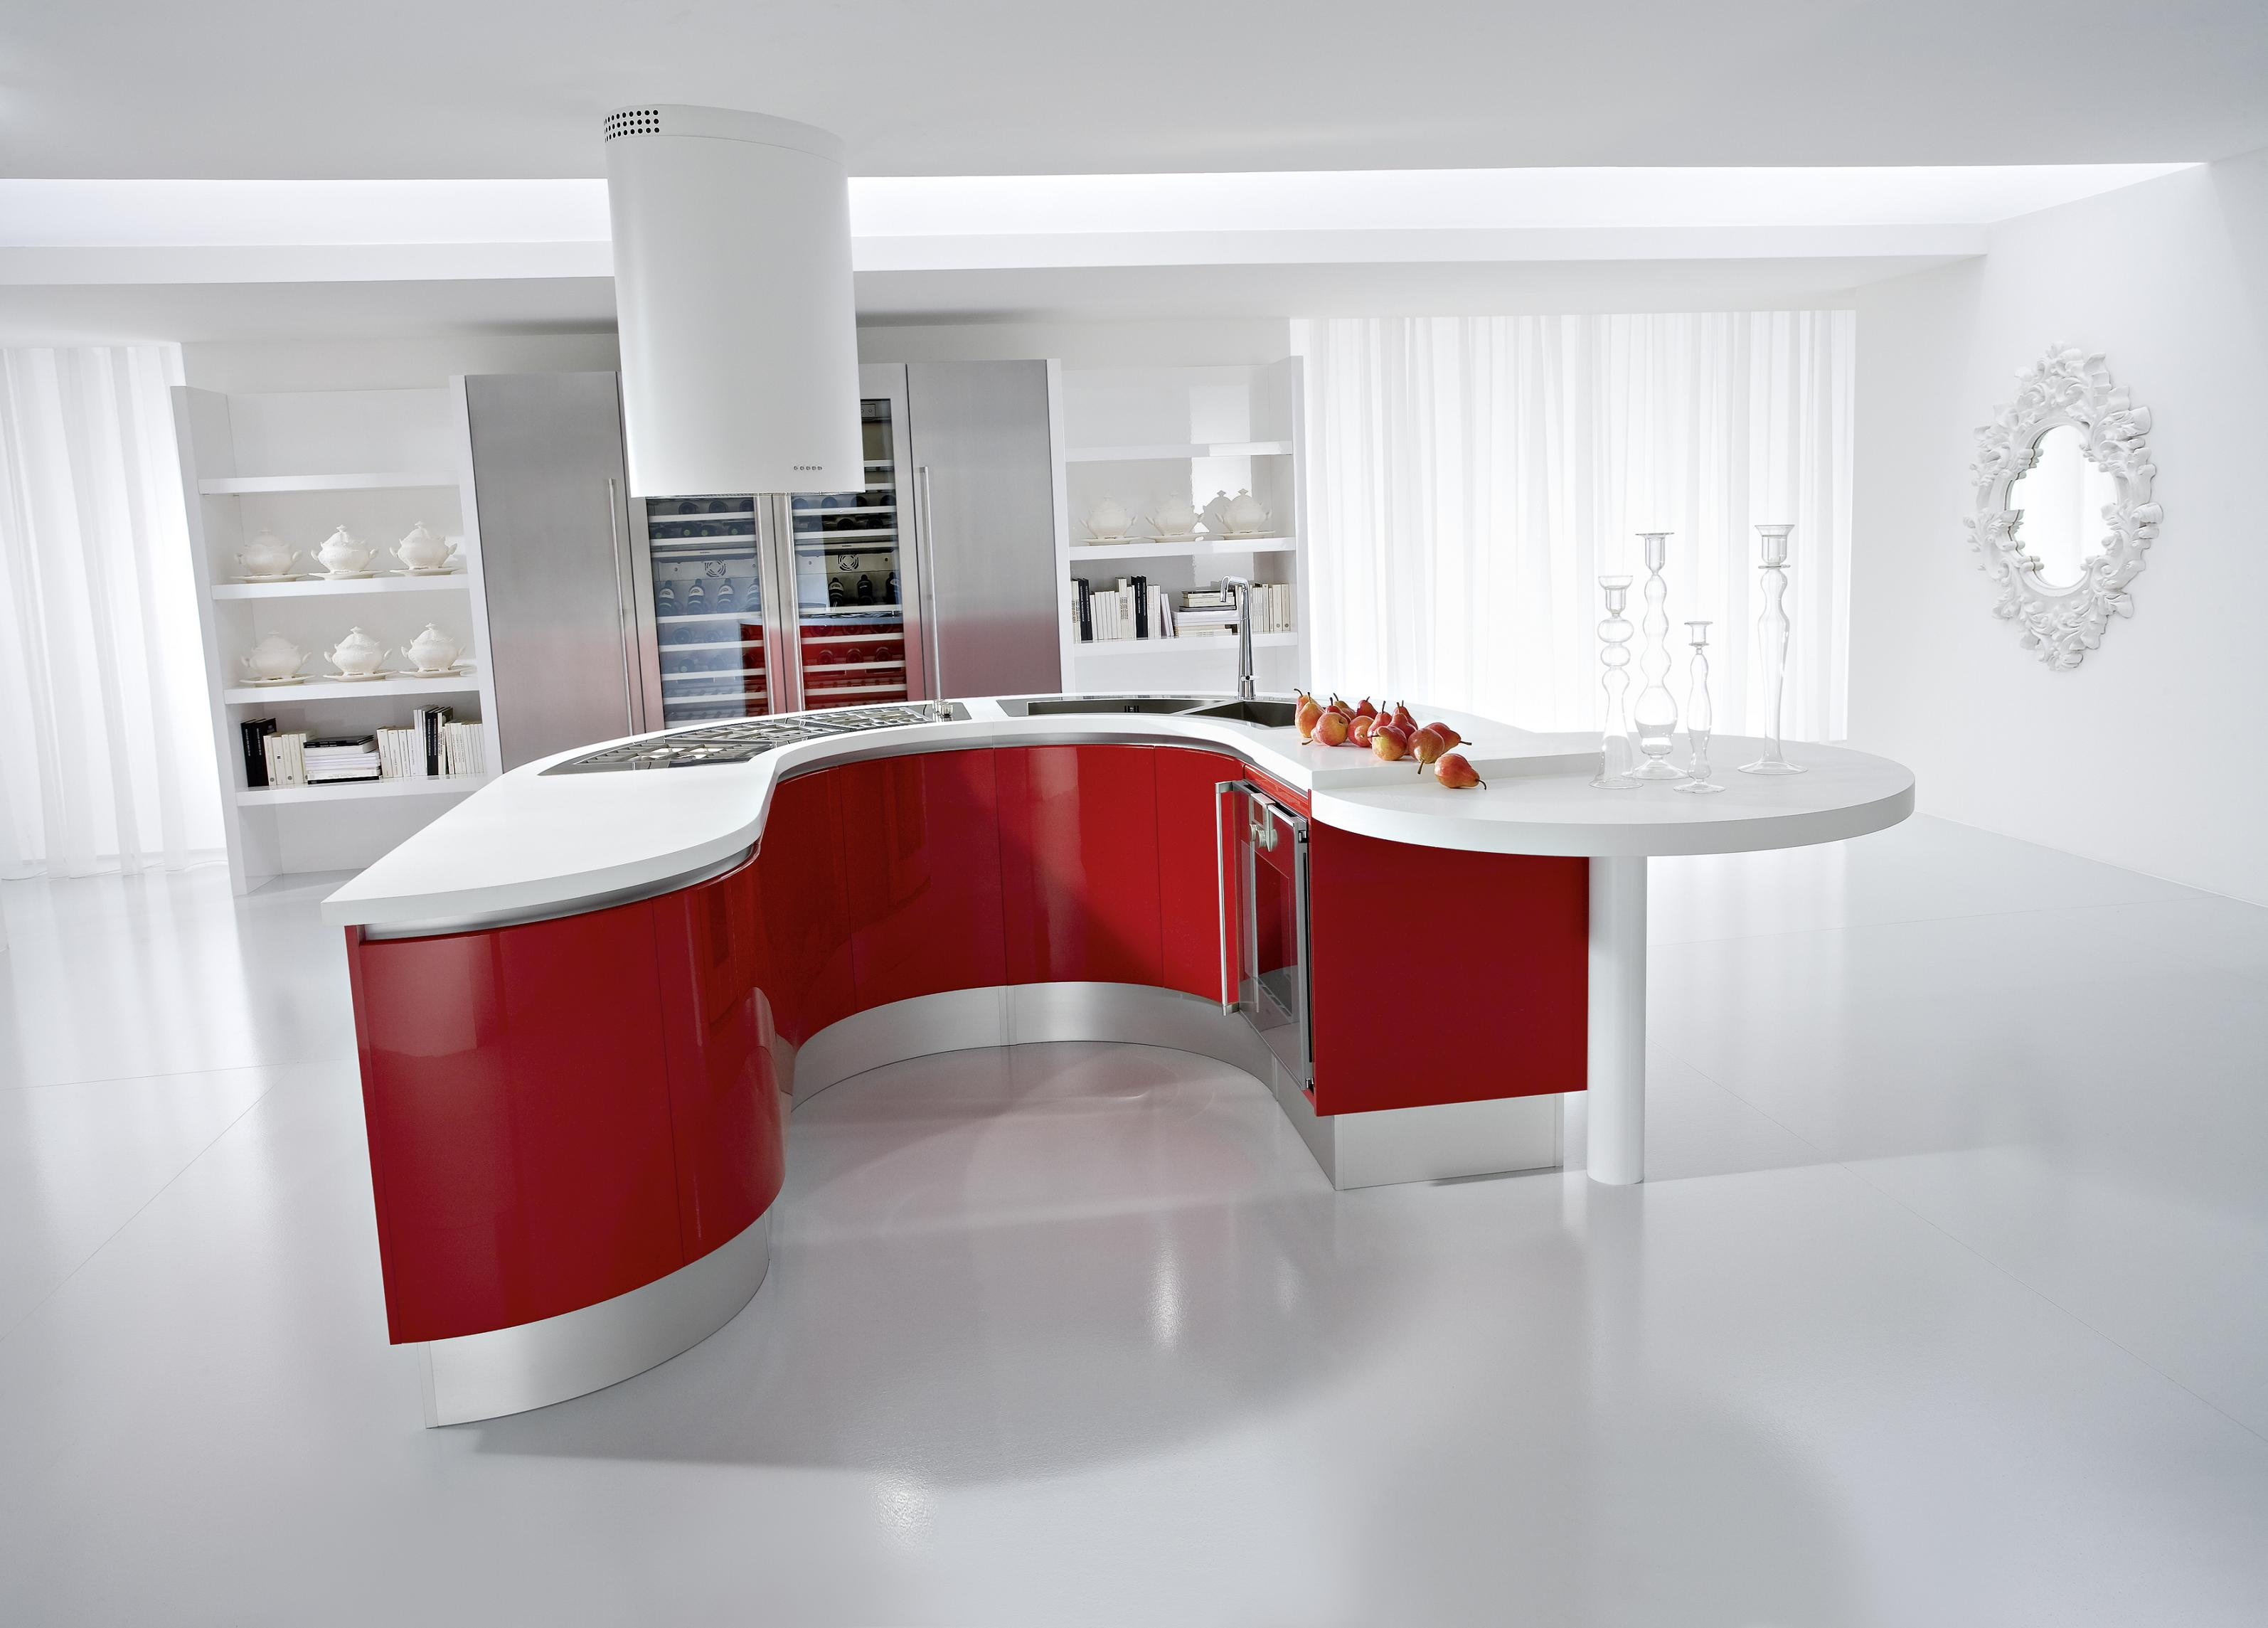 Magnificent Red Kitchen Island 3189 x 2289 · 381 kB · jpeg